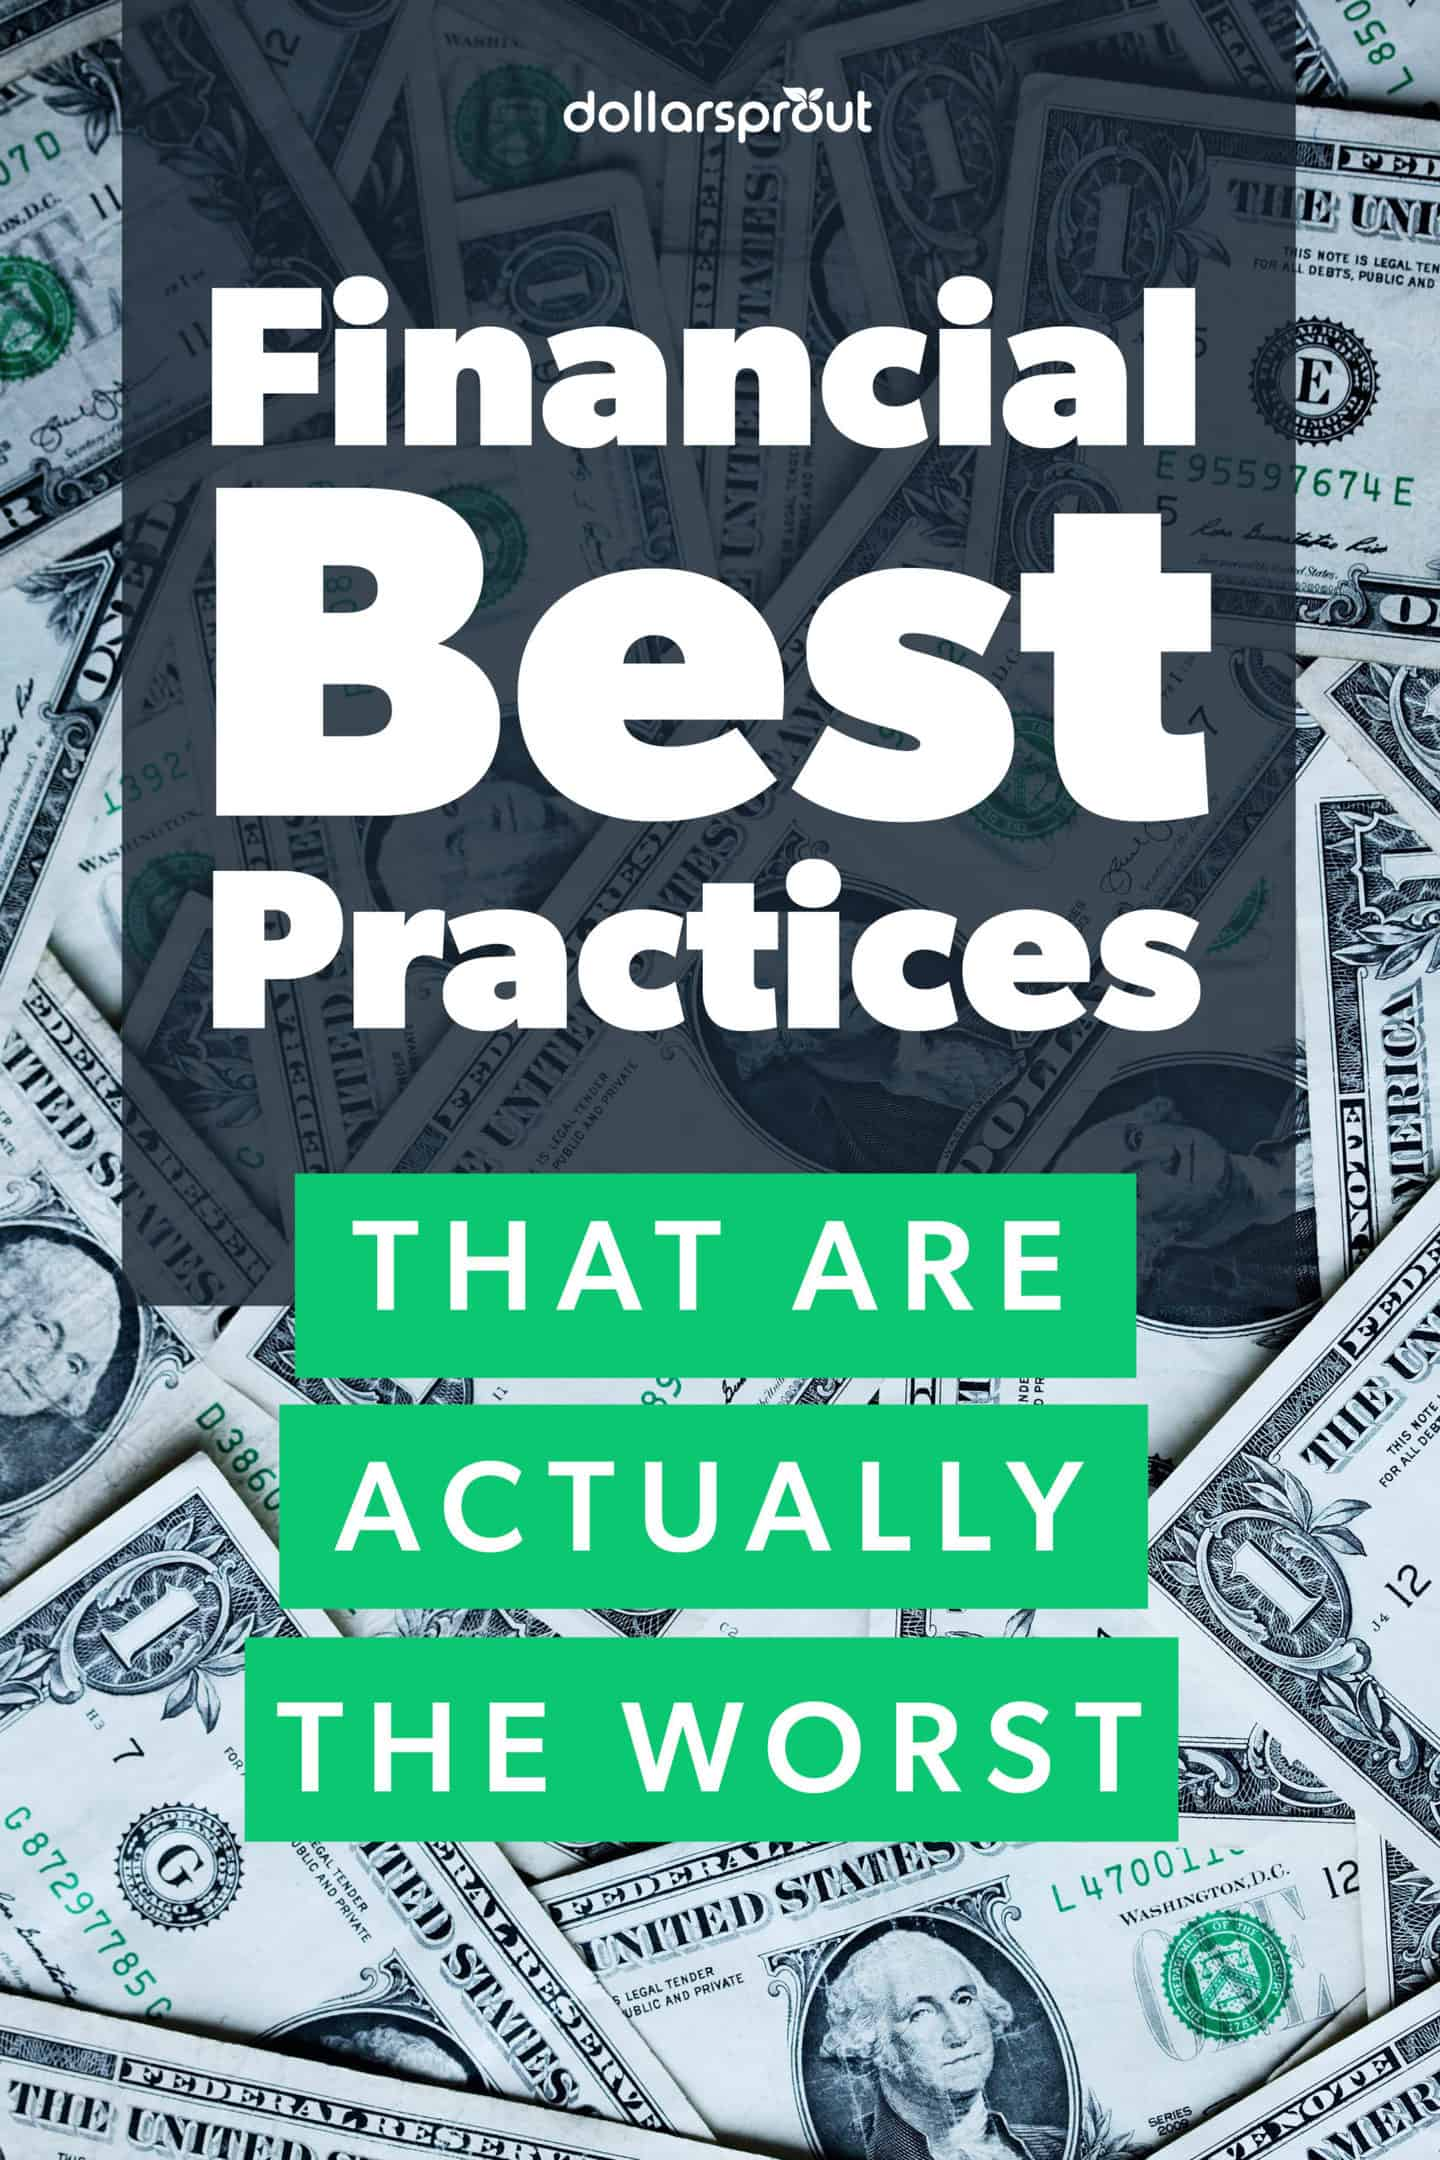 examples of bad financial advice